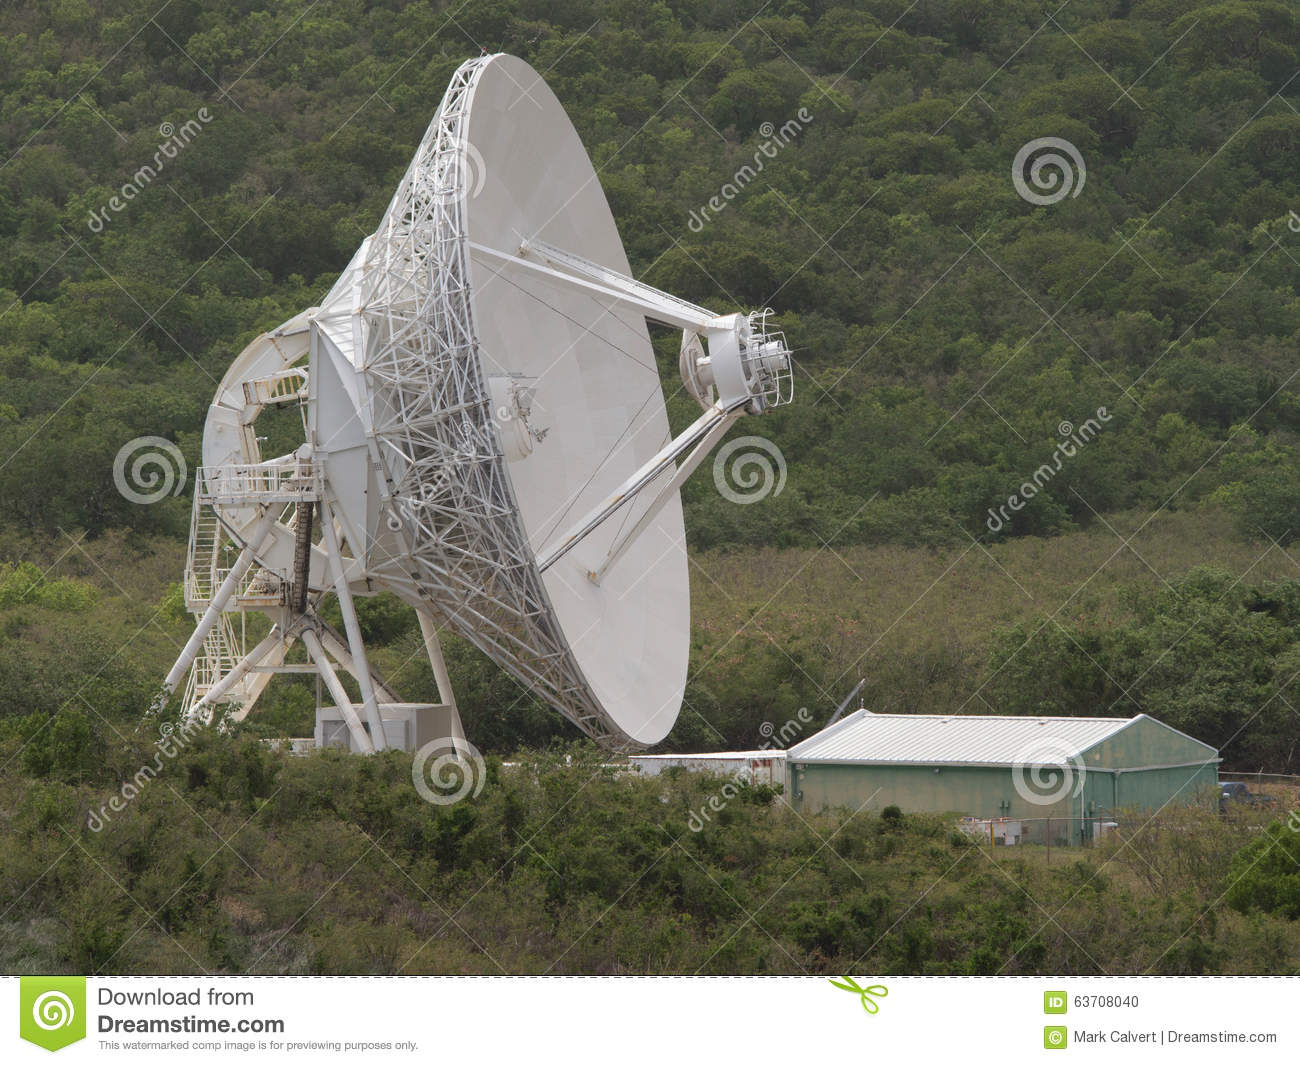 nasa satellite dish - photo #19